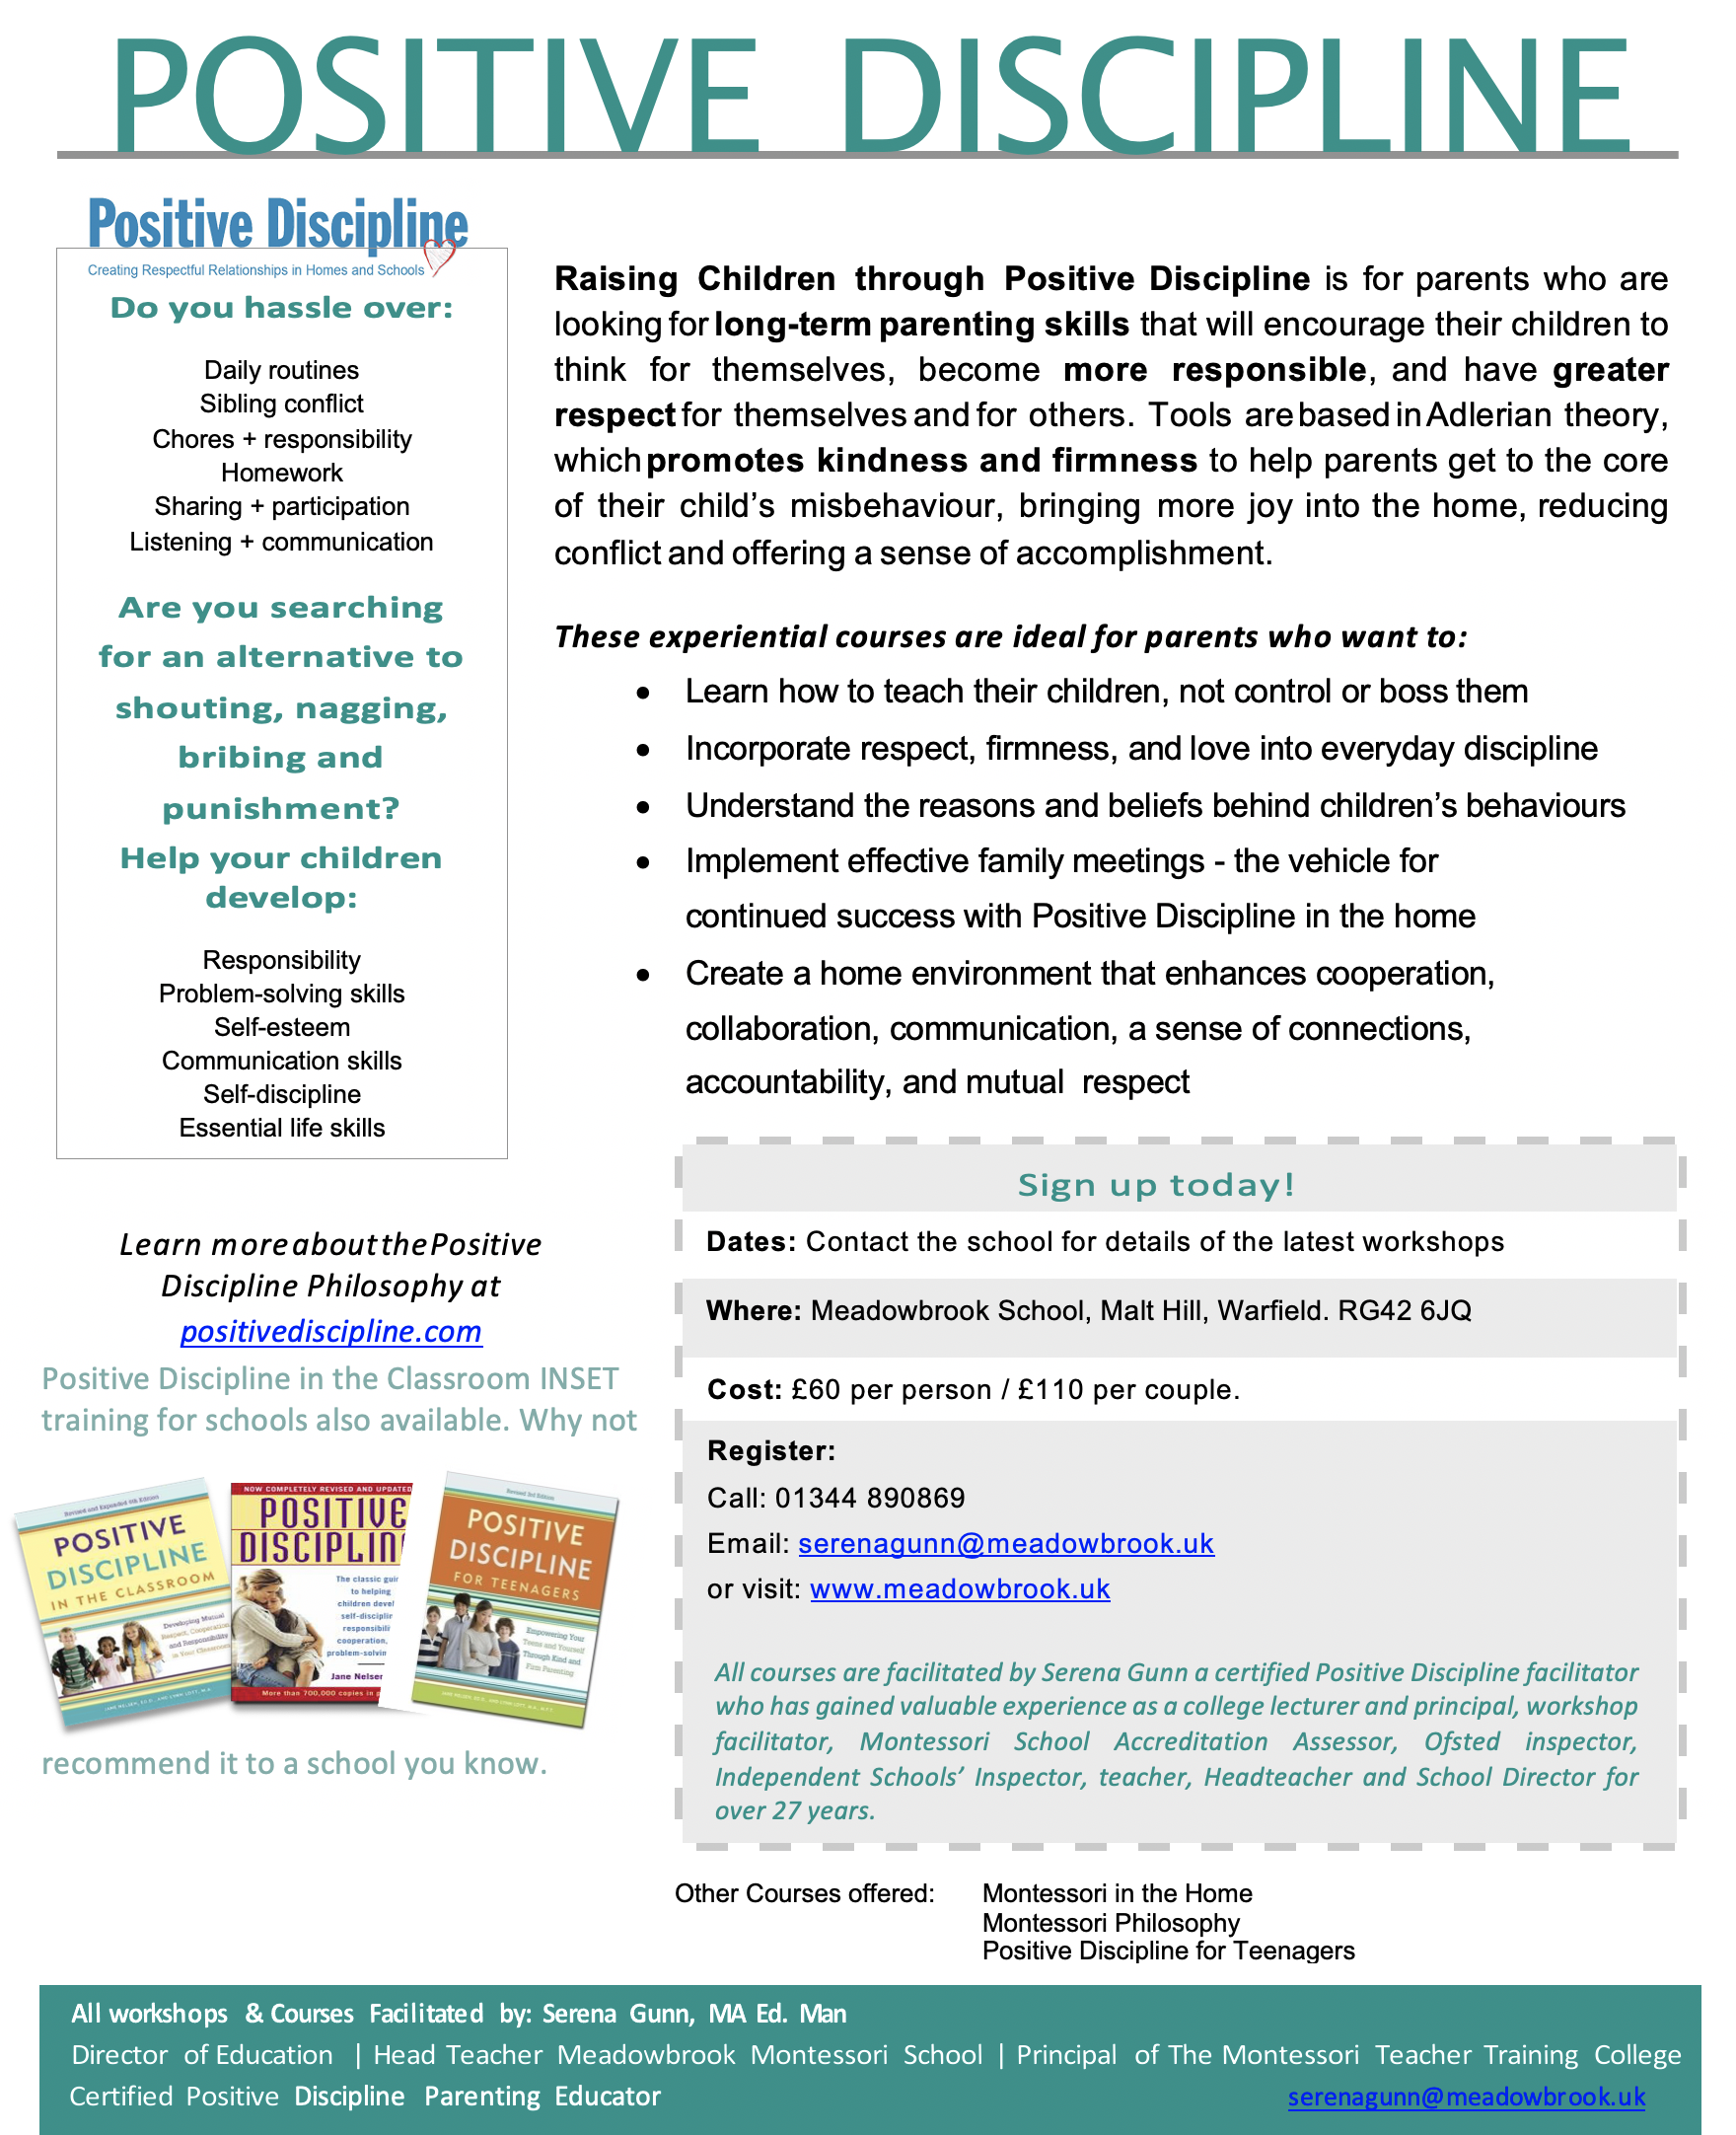 Positive Discipline - Flyer - Meadowbrook School - Warfield